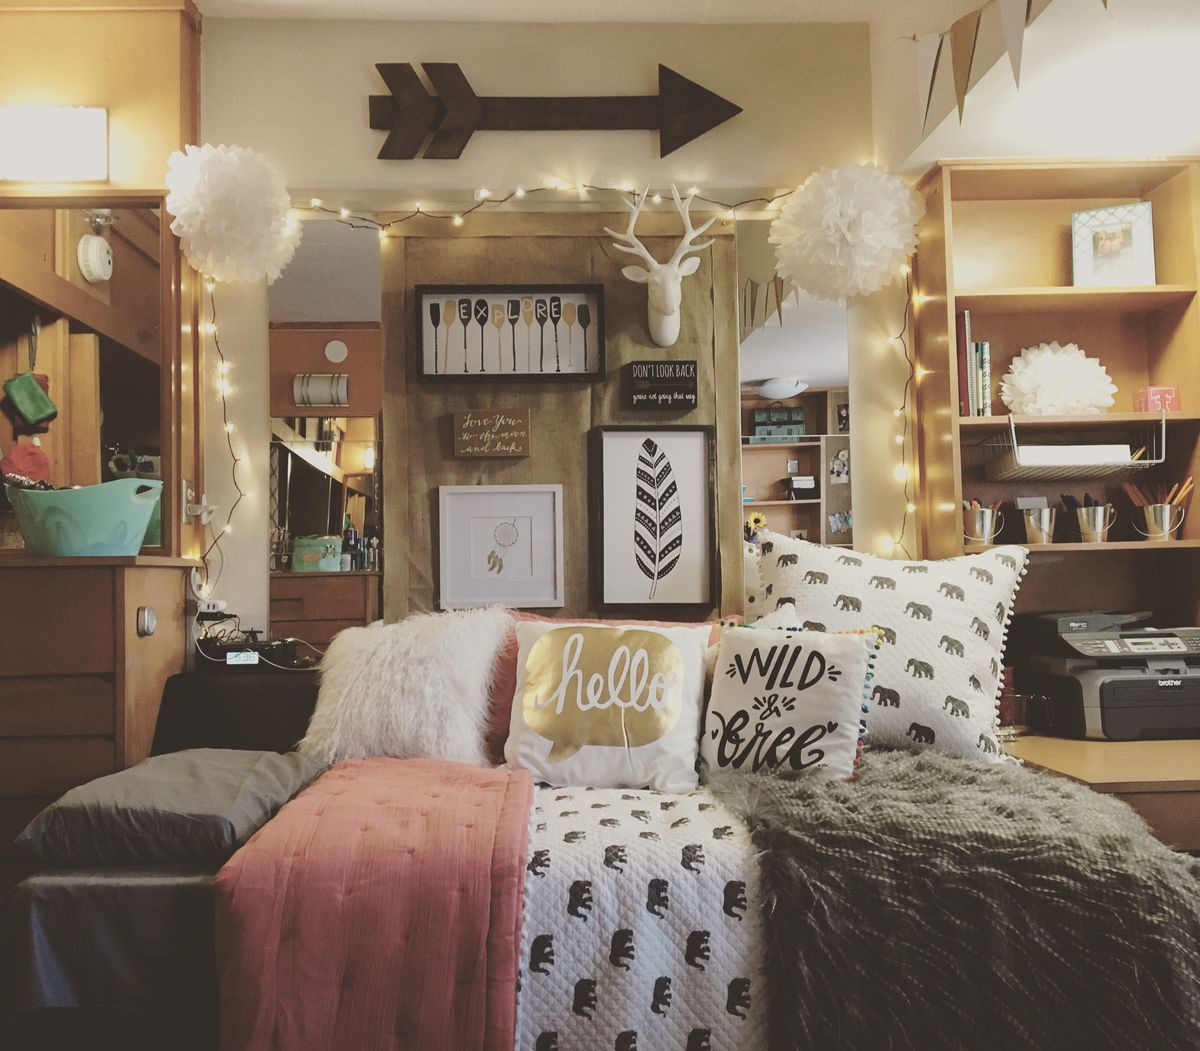 Where To Buy Dorm Room Bedding